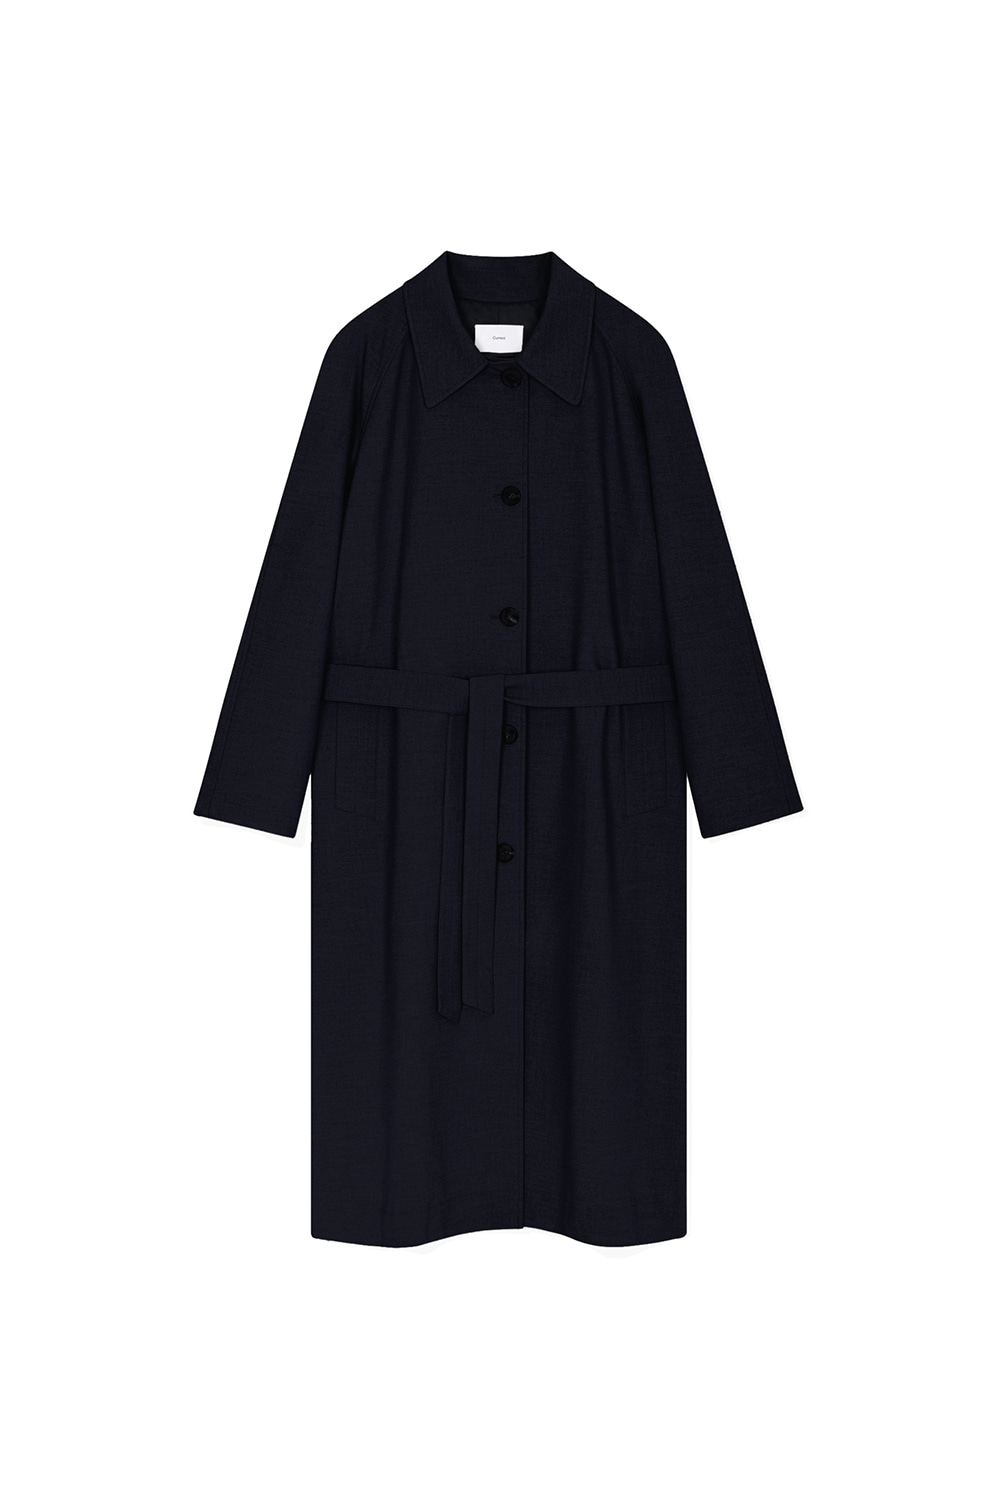 Over Trench Coat Women JA [Dark Navy]